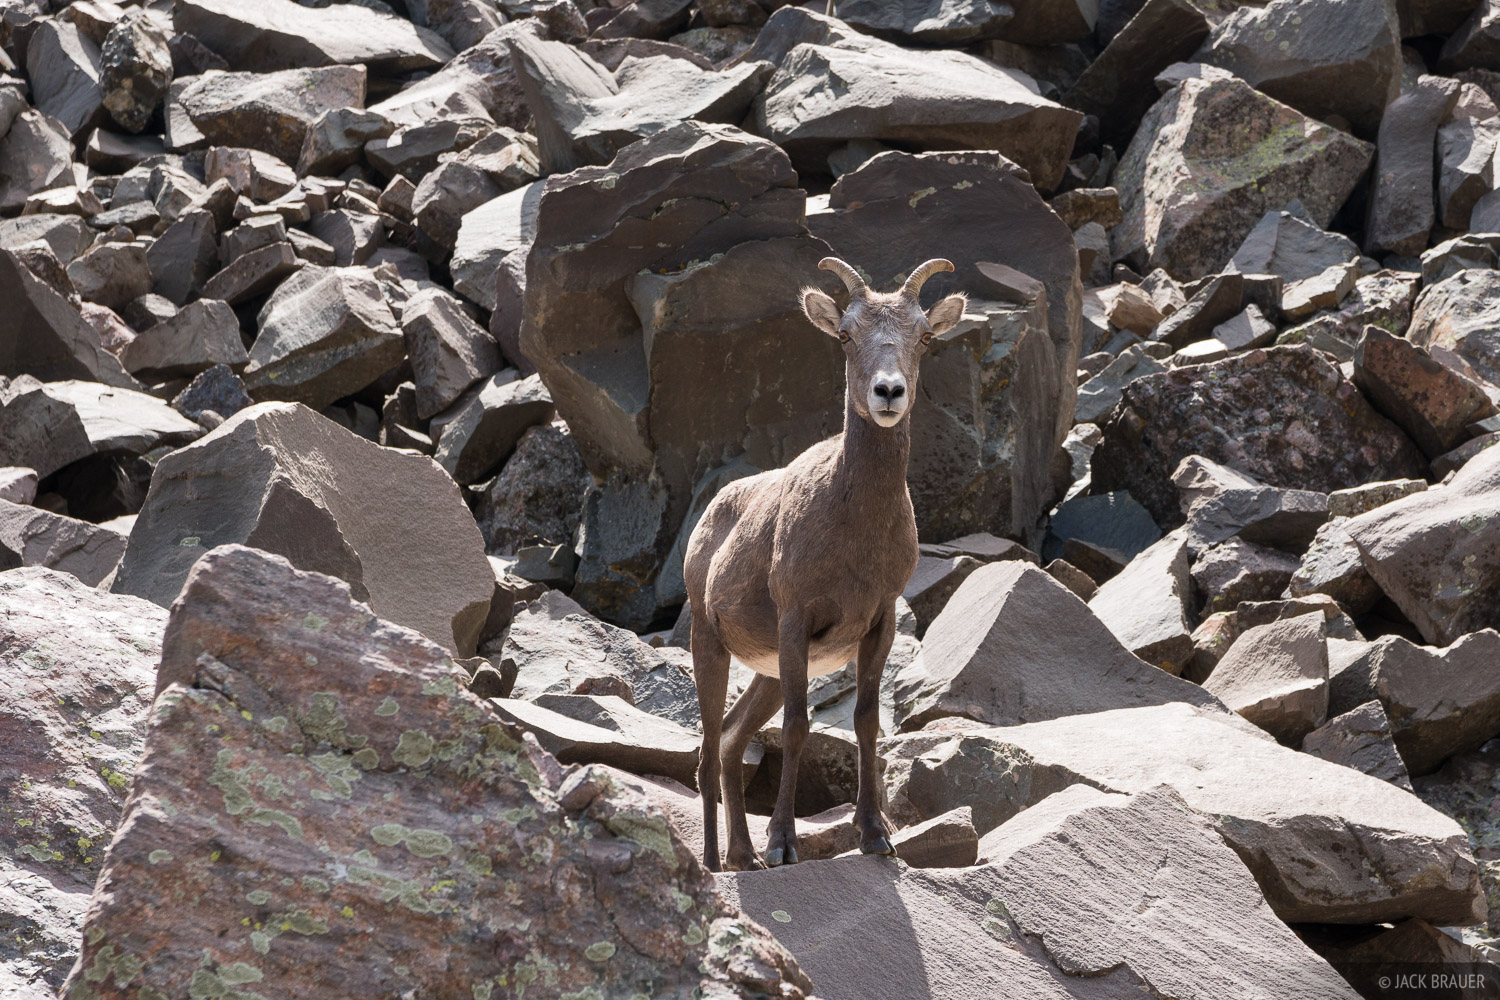 A bighorn sheep ewe in the Sangre de Cristos.